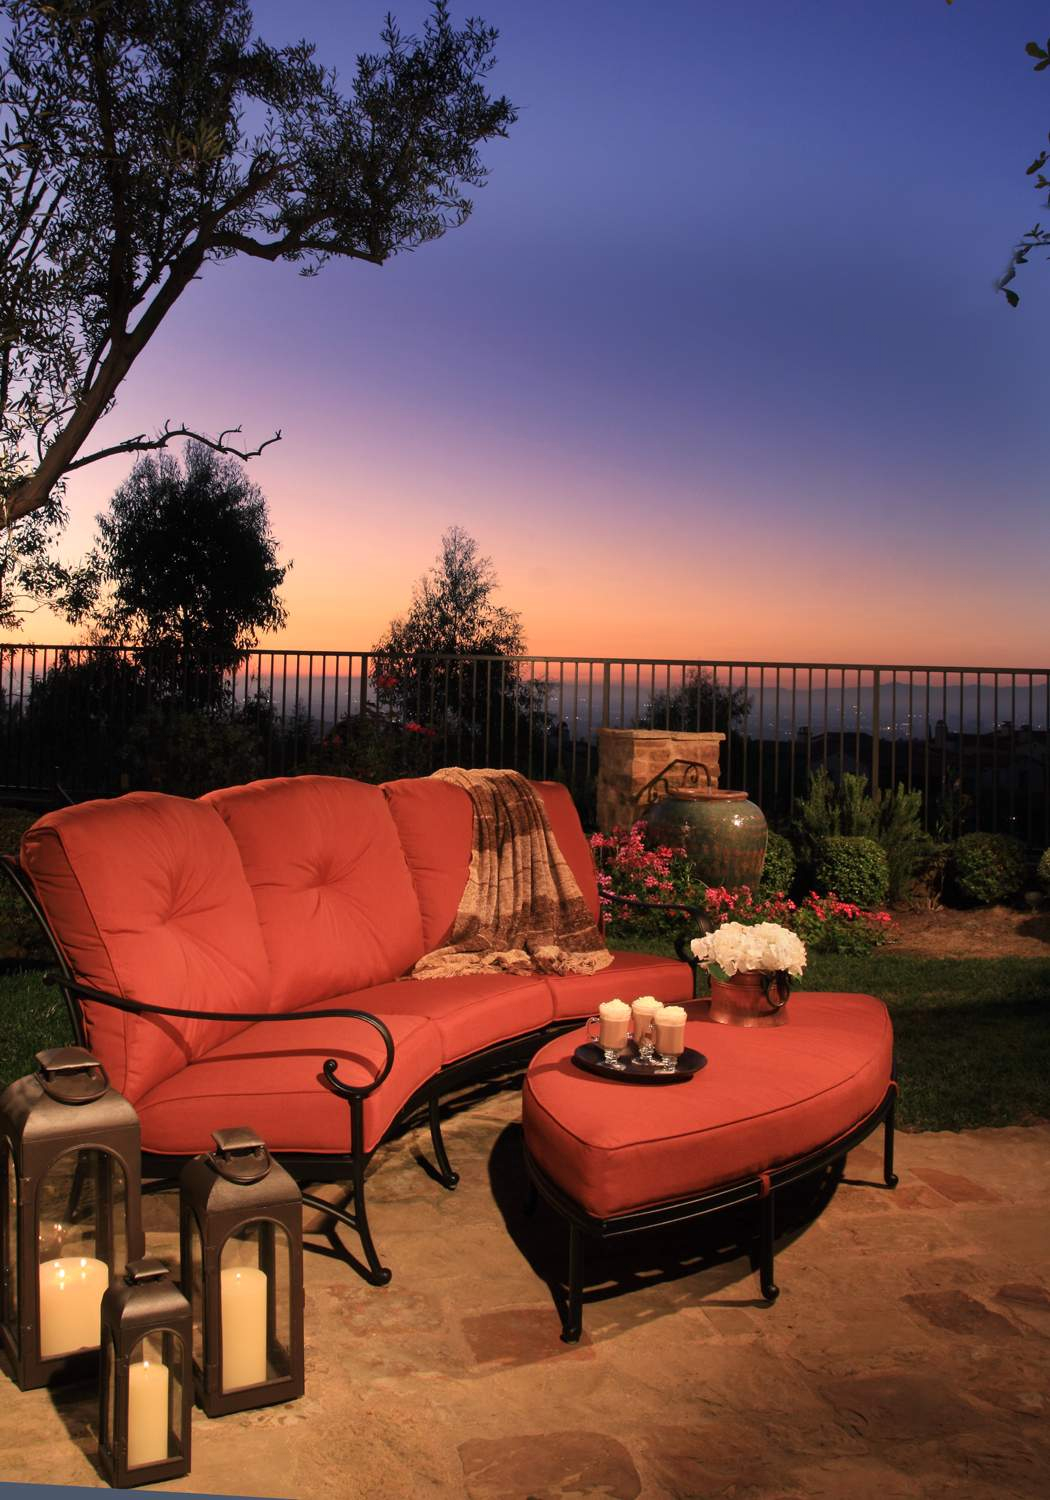 Outdoor Patio Furniture – Sets, Chairs & More | Backyard ...